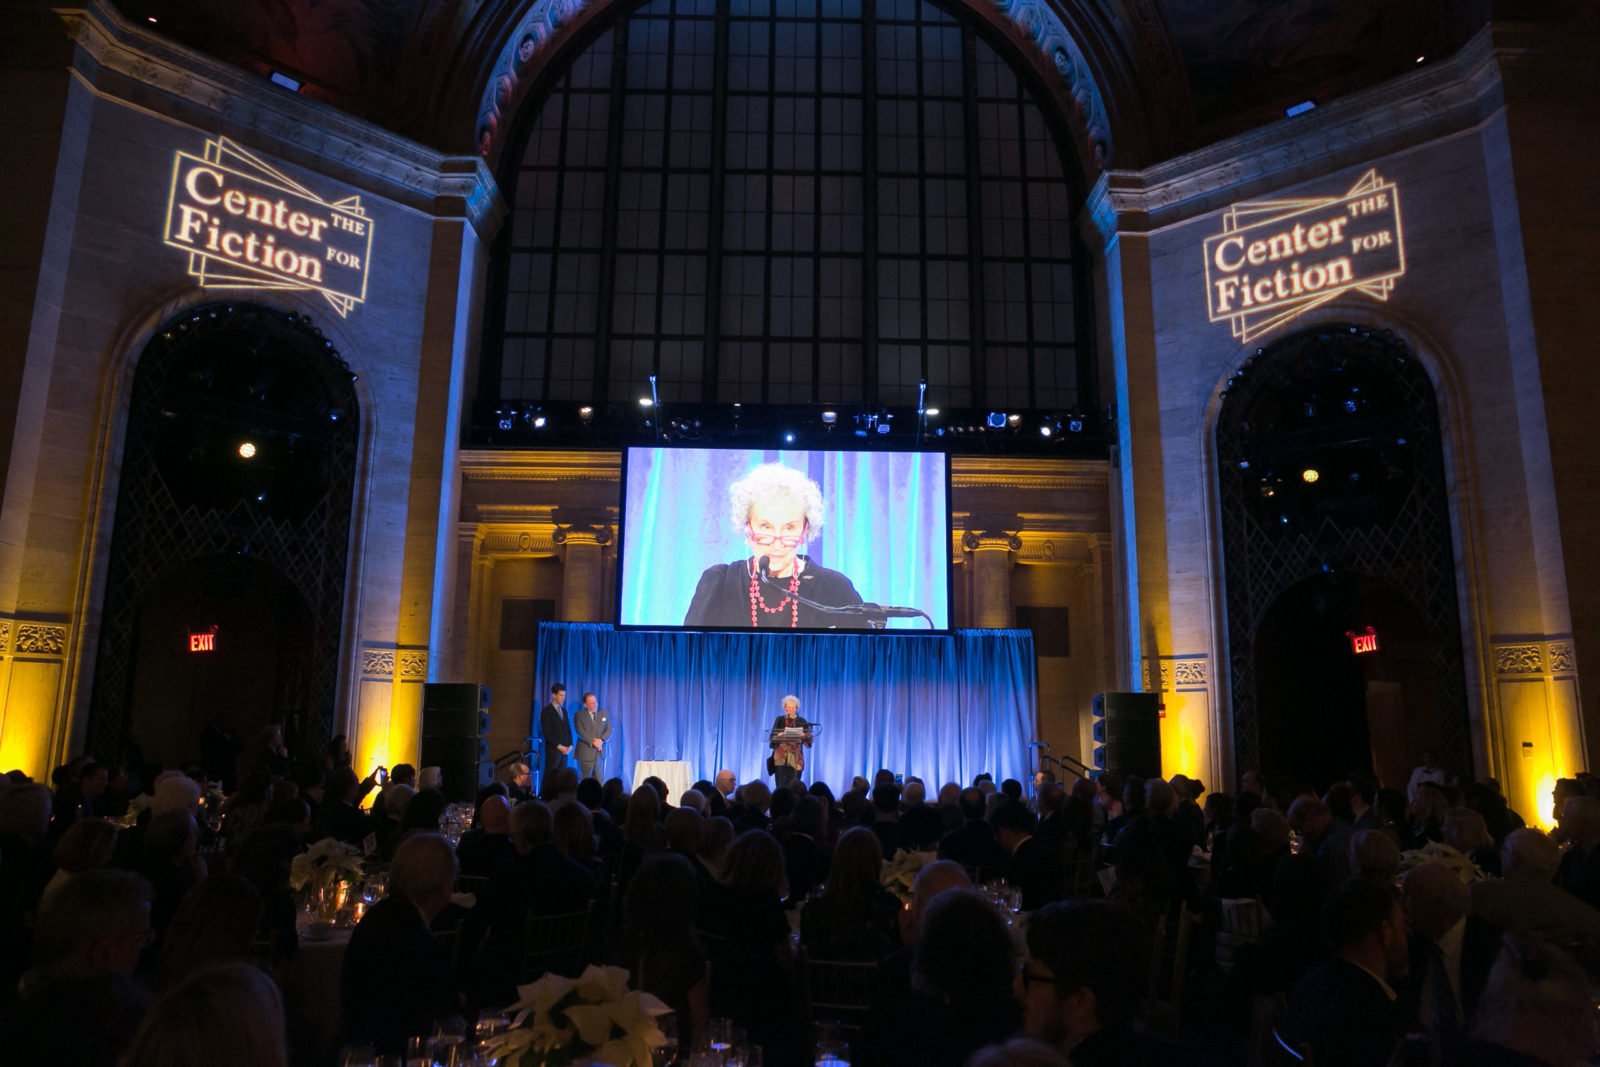 Center for Fiction First Novel Prize, On Screen Award, and Maxwell E. Perkins Award